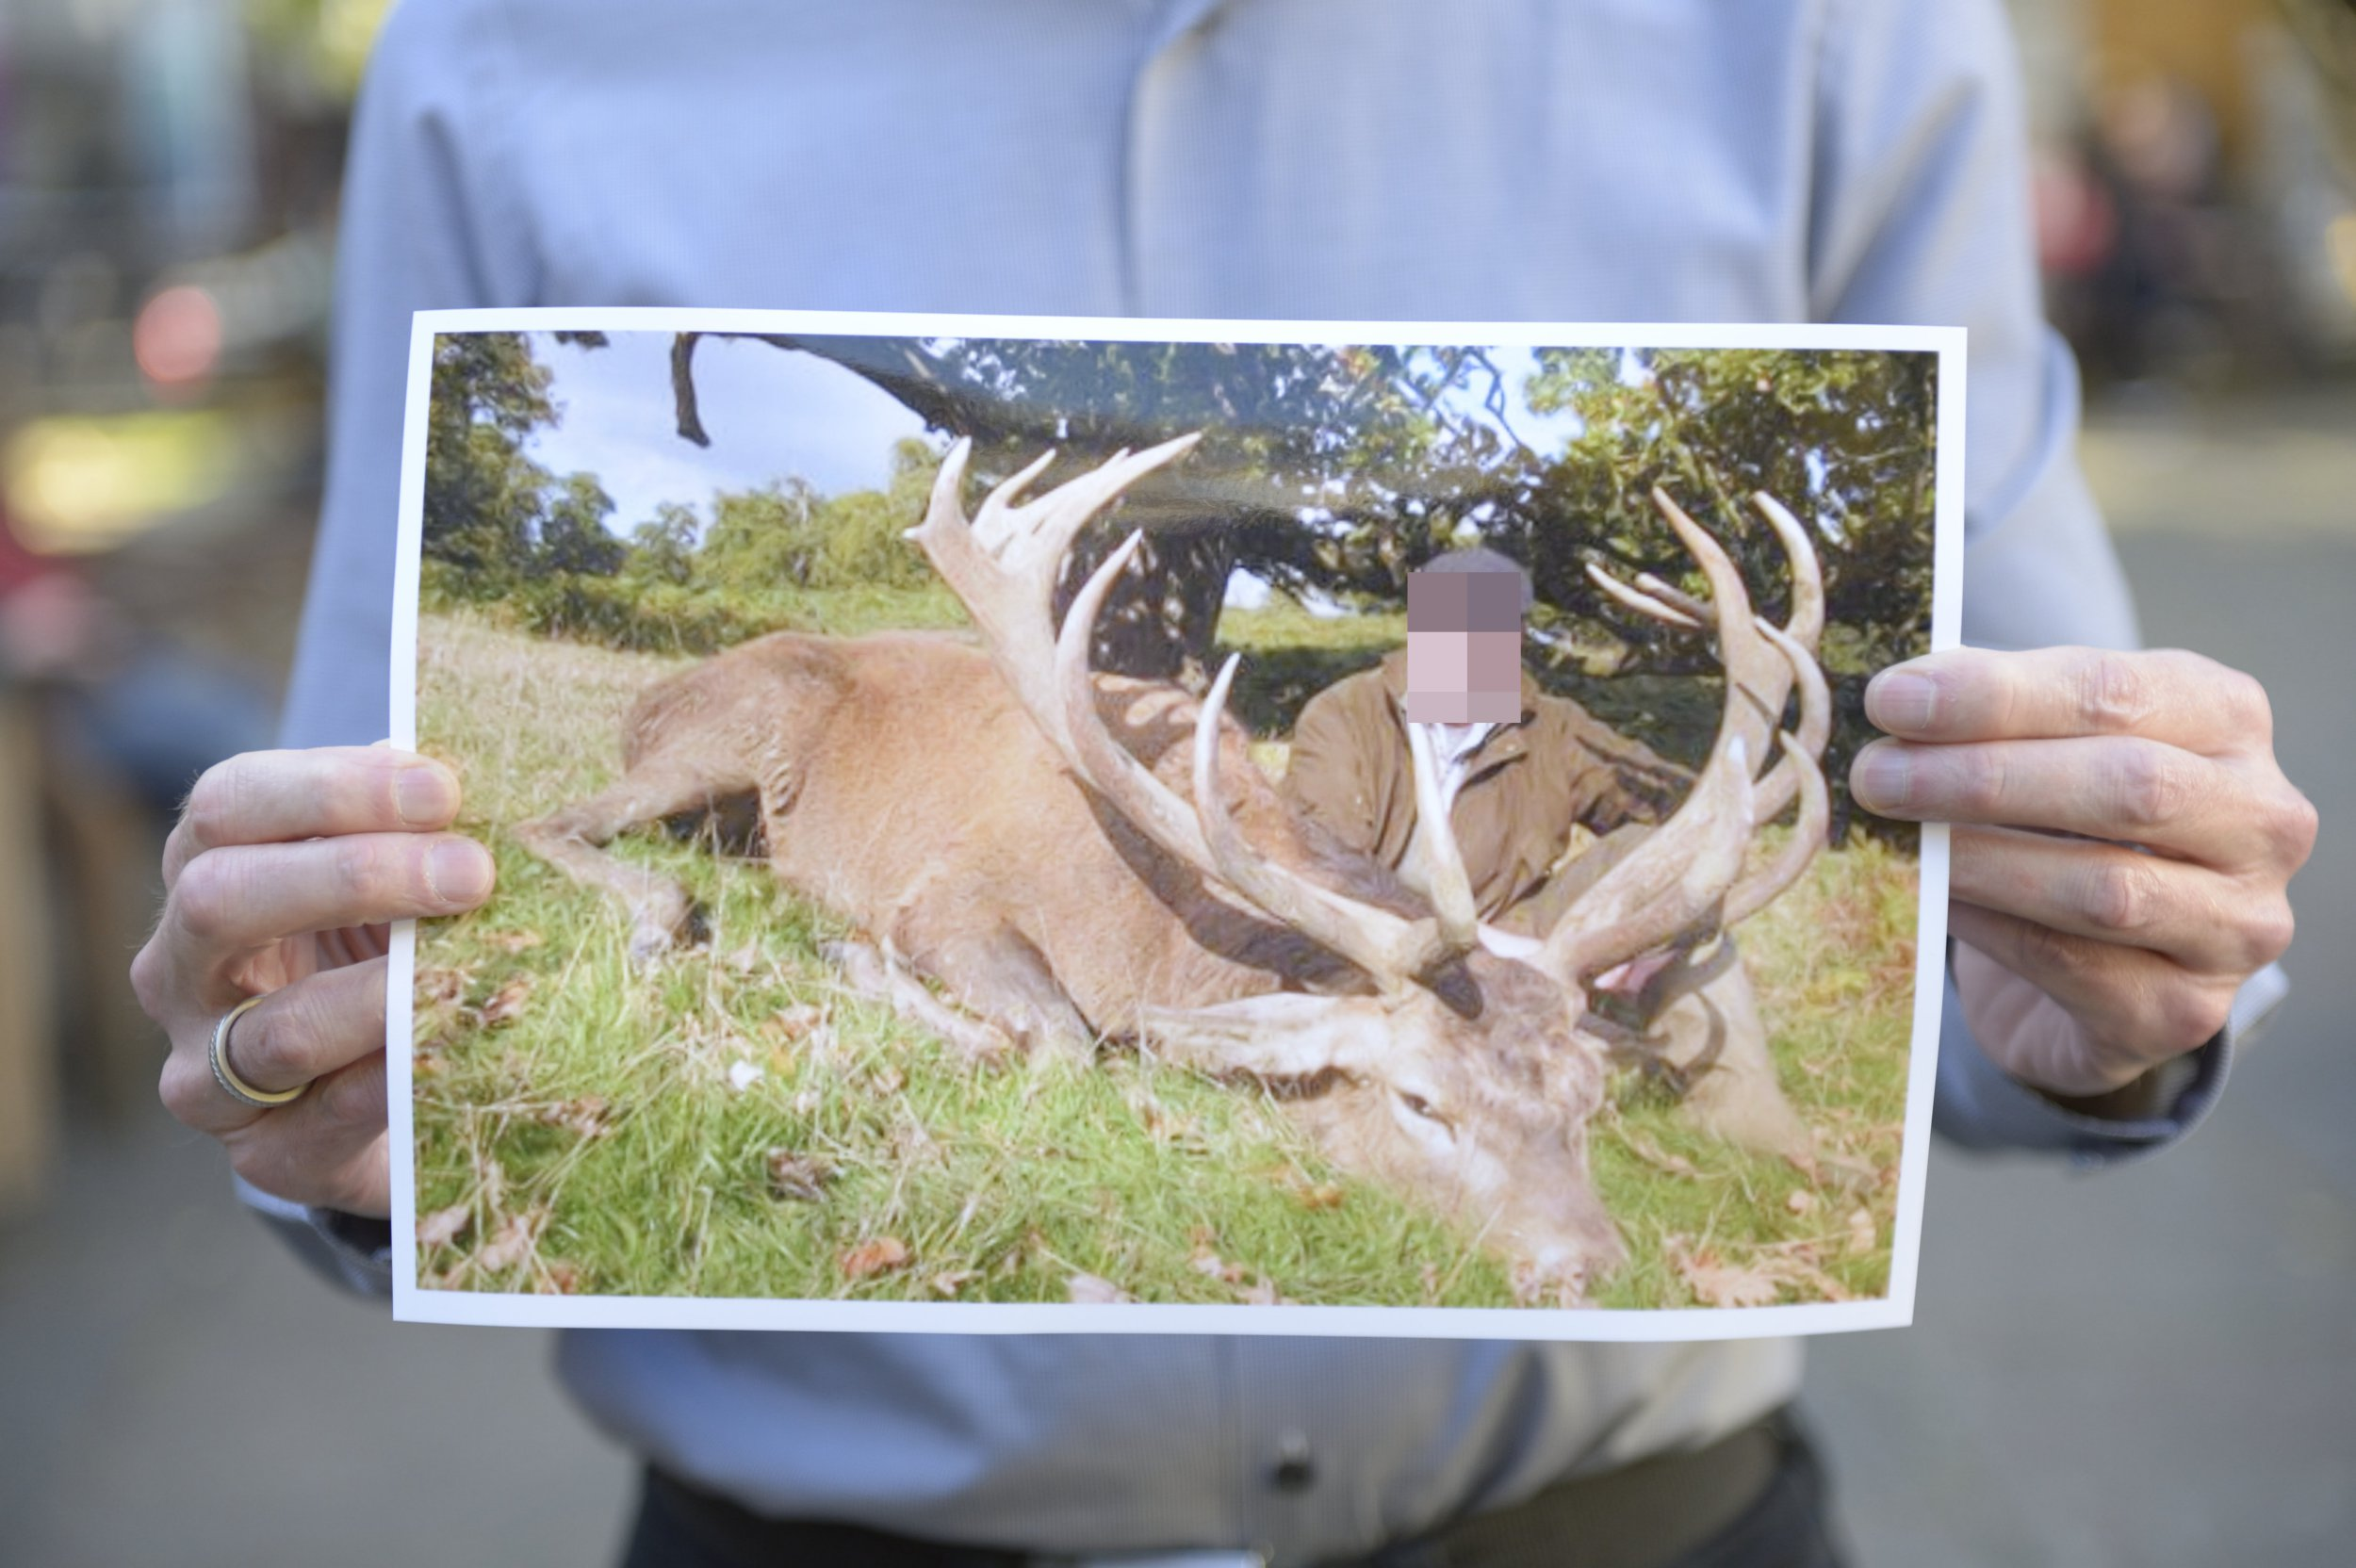 A member of Bedfordshire Against Trophy Hunting - BATH holding up a picture of what he says is a dead deer in Woburn deer park in Bedfordshire shot by a foreign hunter. See SWNS copy SWCAdeer: Foreign hunters are paying more ?9,000 to shoot down British stags at on special arranged tours to a deer park, campaigners have claimed. People are coming from as far at the USA, Denmark and Finland to a deer park owned by the world famous Woburn Safari Park in Bedfordshire to kill magnificent Red Stags. Conservationists say there are no assurances that incoming hunters have any gun experiences and claim that anyone who can afford it, can kill a deer.